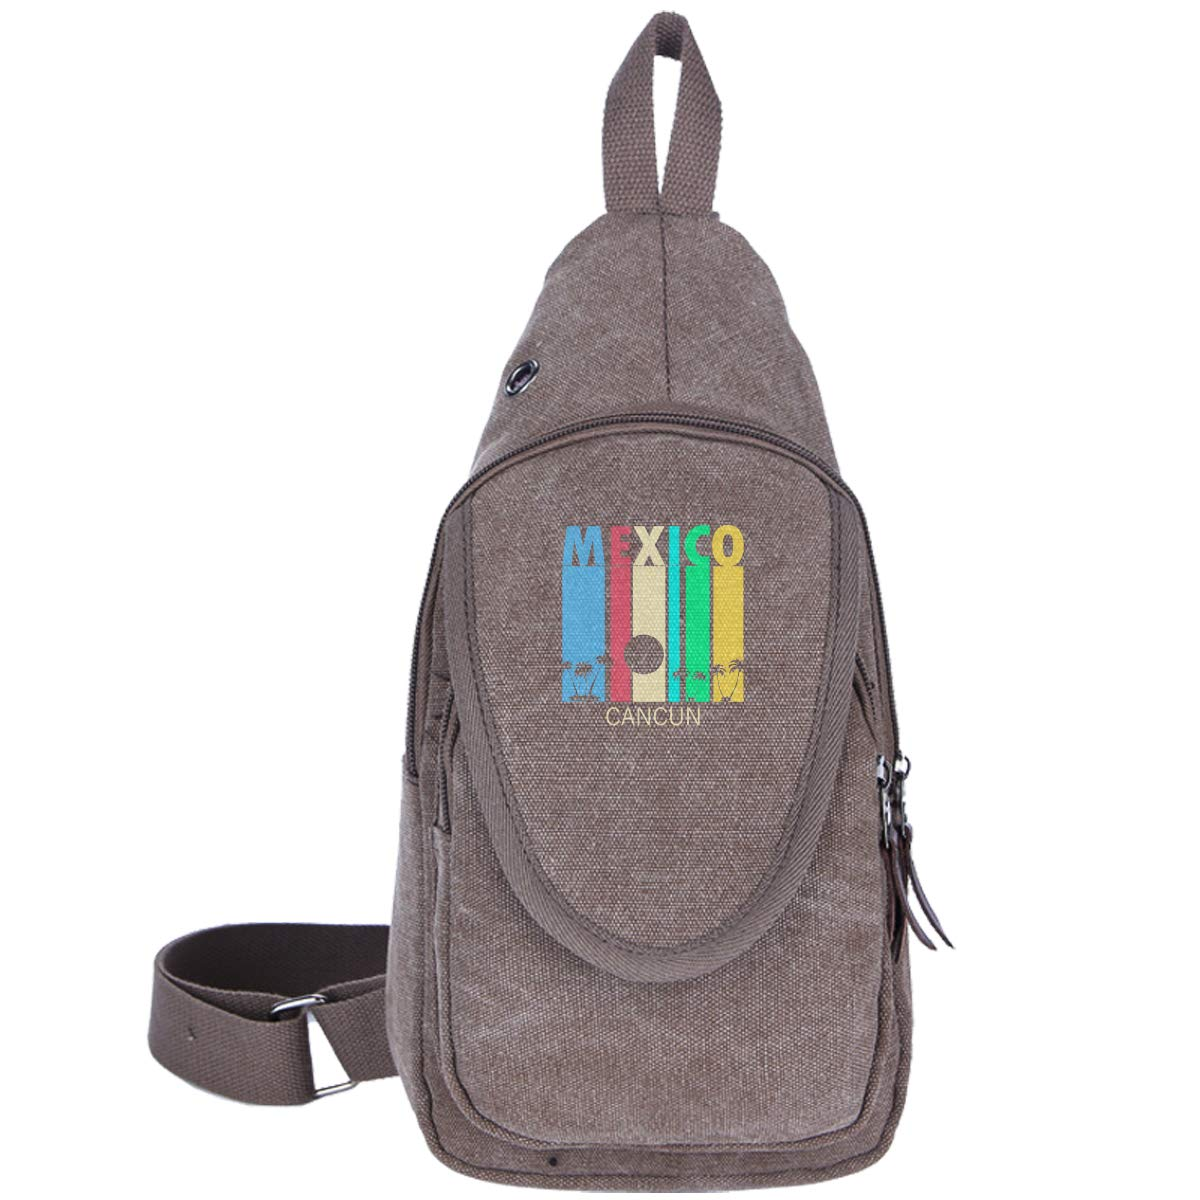 Retro Cancun Mexico Canvas Chest Pack For Walking Travelling Casual Bag For Men/&Women Moss Green